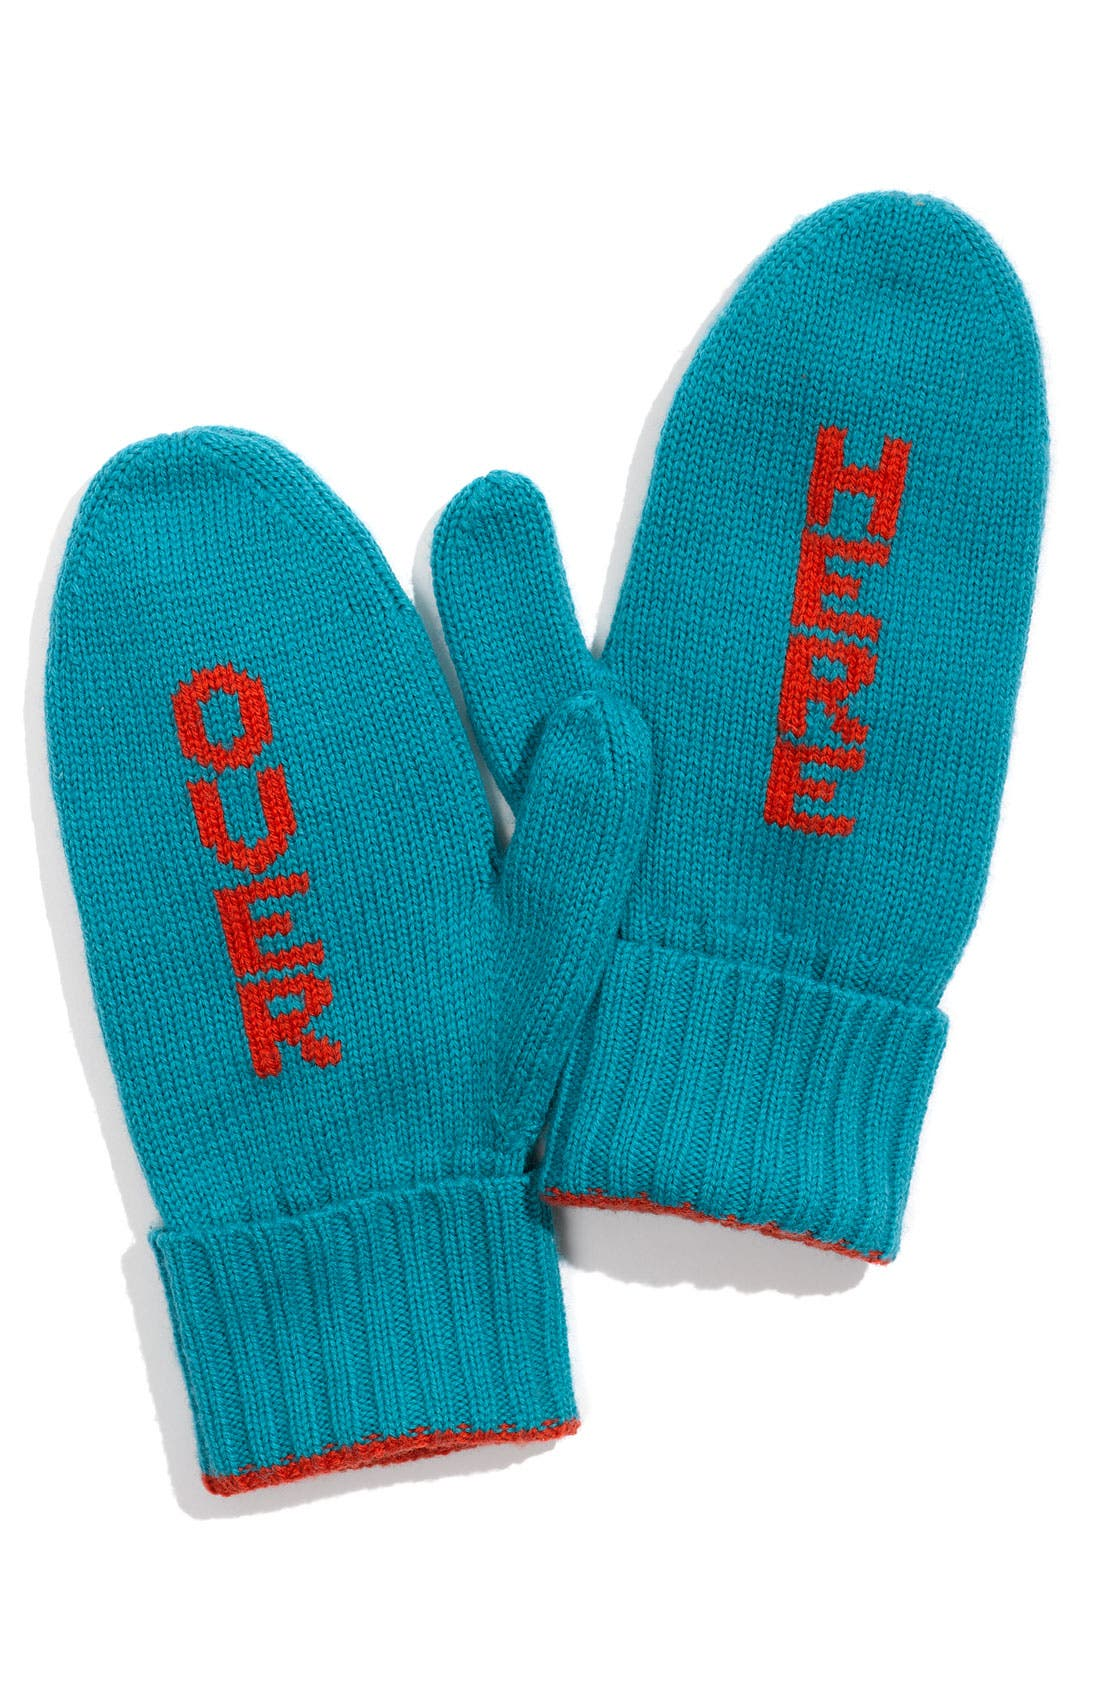 Main Image - kate spade new york 'over here' mittens